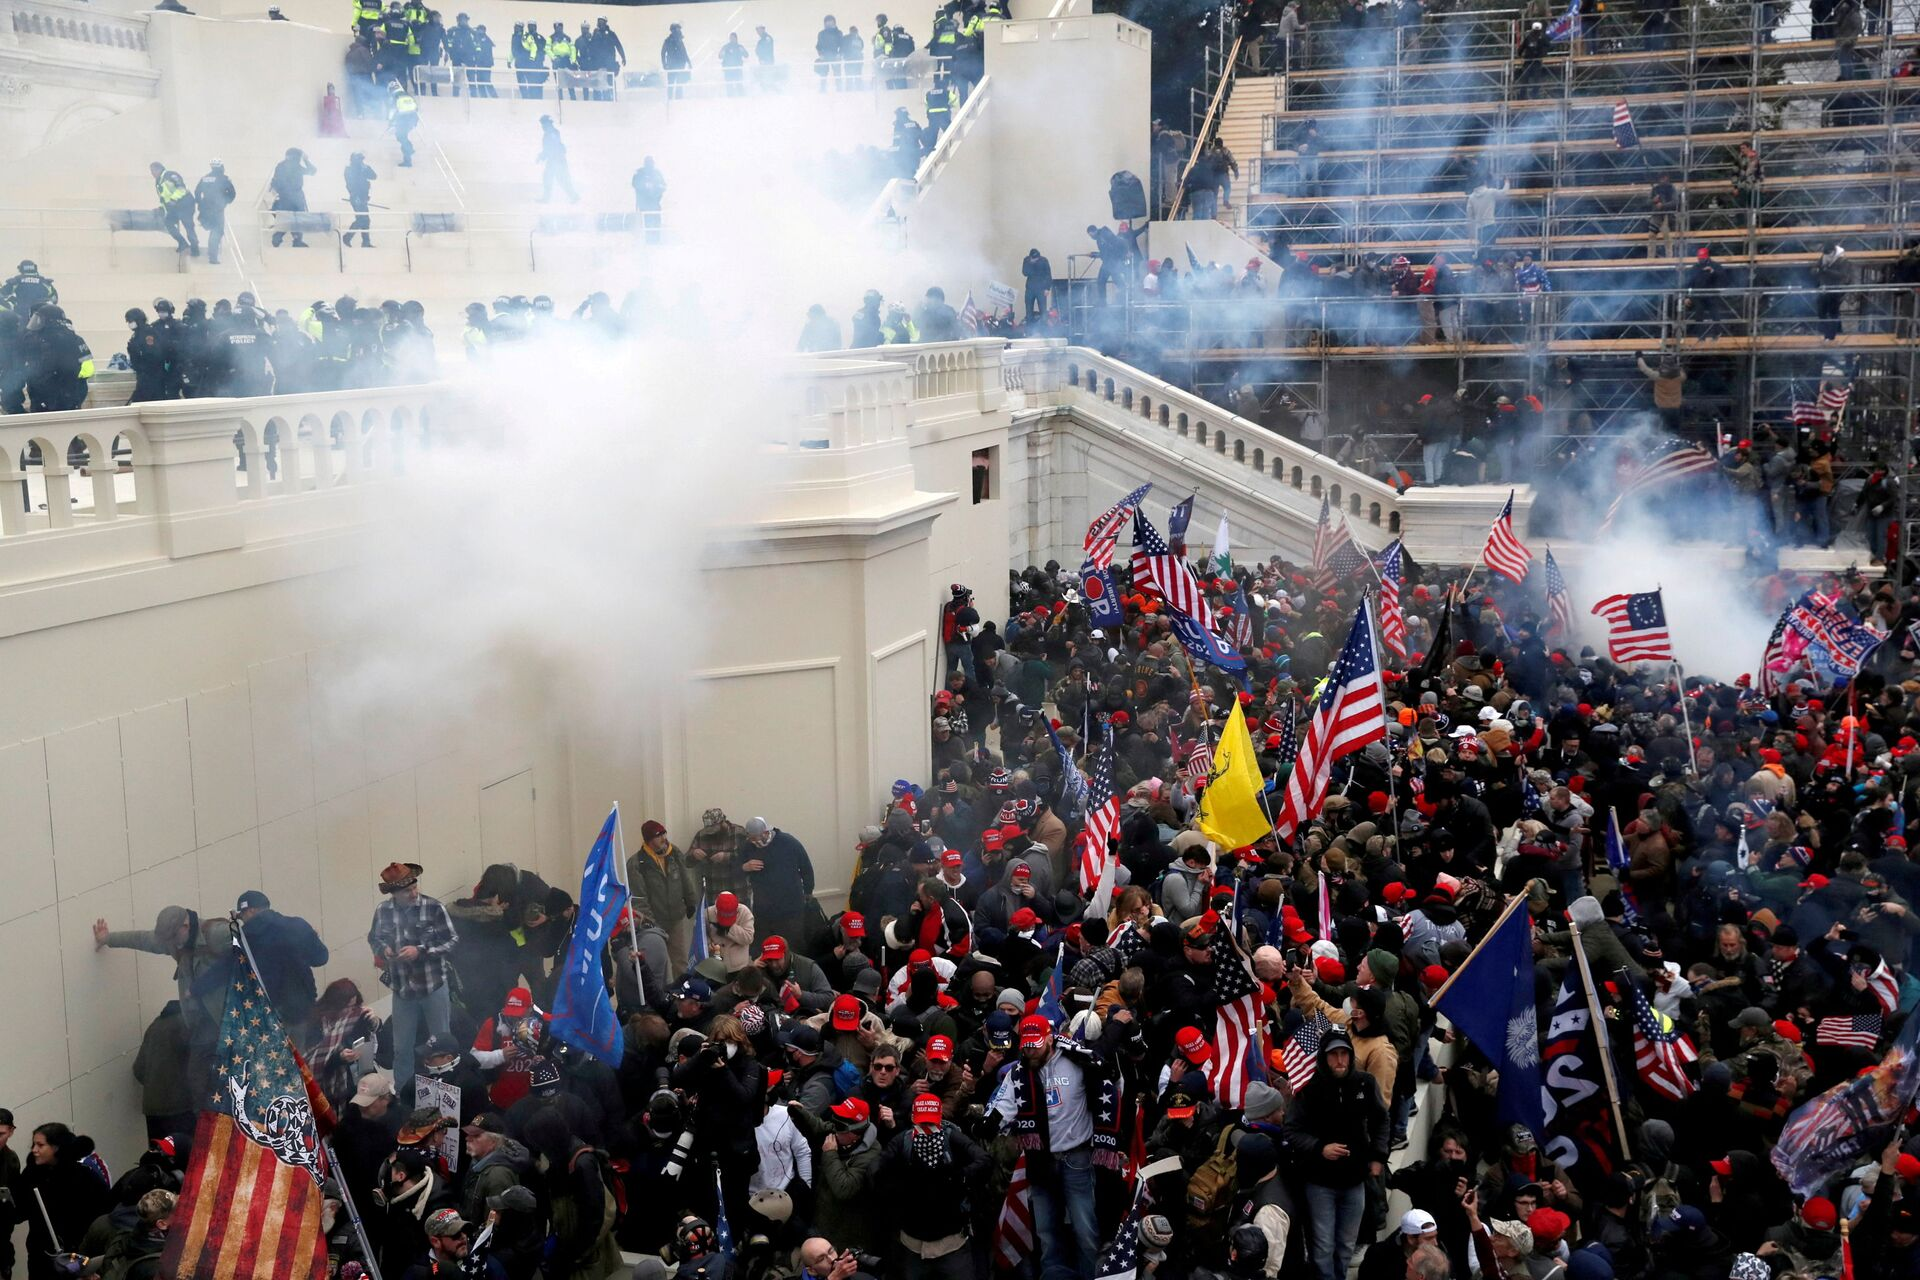 Police release tear gas into a crowd of pro-Trump protesters during clashes at a rally to contest the certification of the 2020 U.S. presidential election results by the U.S. Congress, at the U.S. Capitol Building in Washington, U.S, January 6, 2021. - Sputnik International, 1920, 12.09.2021